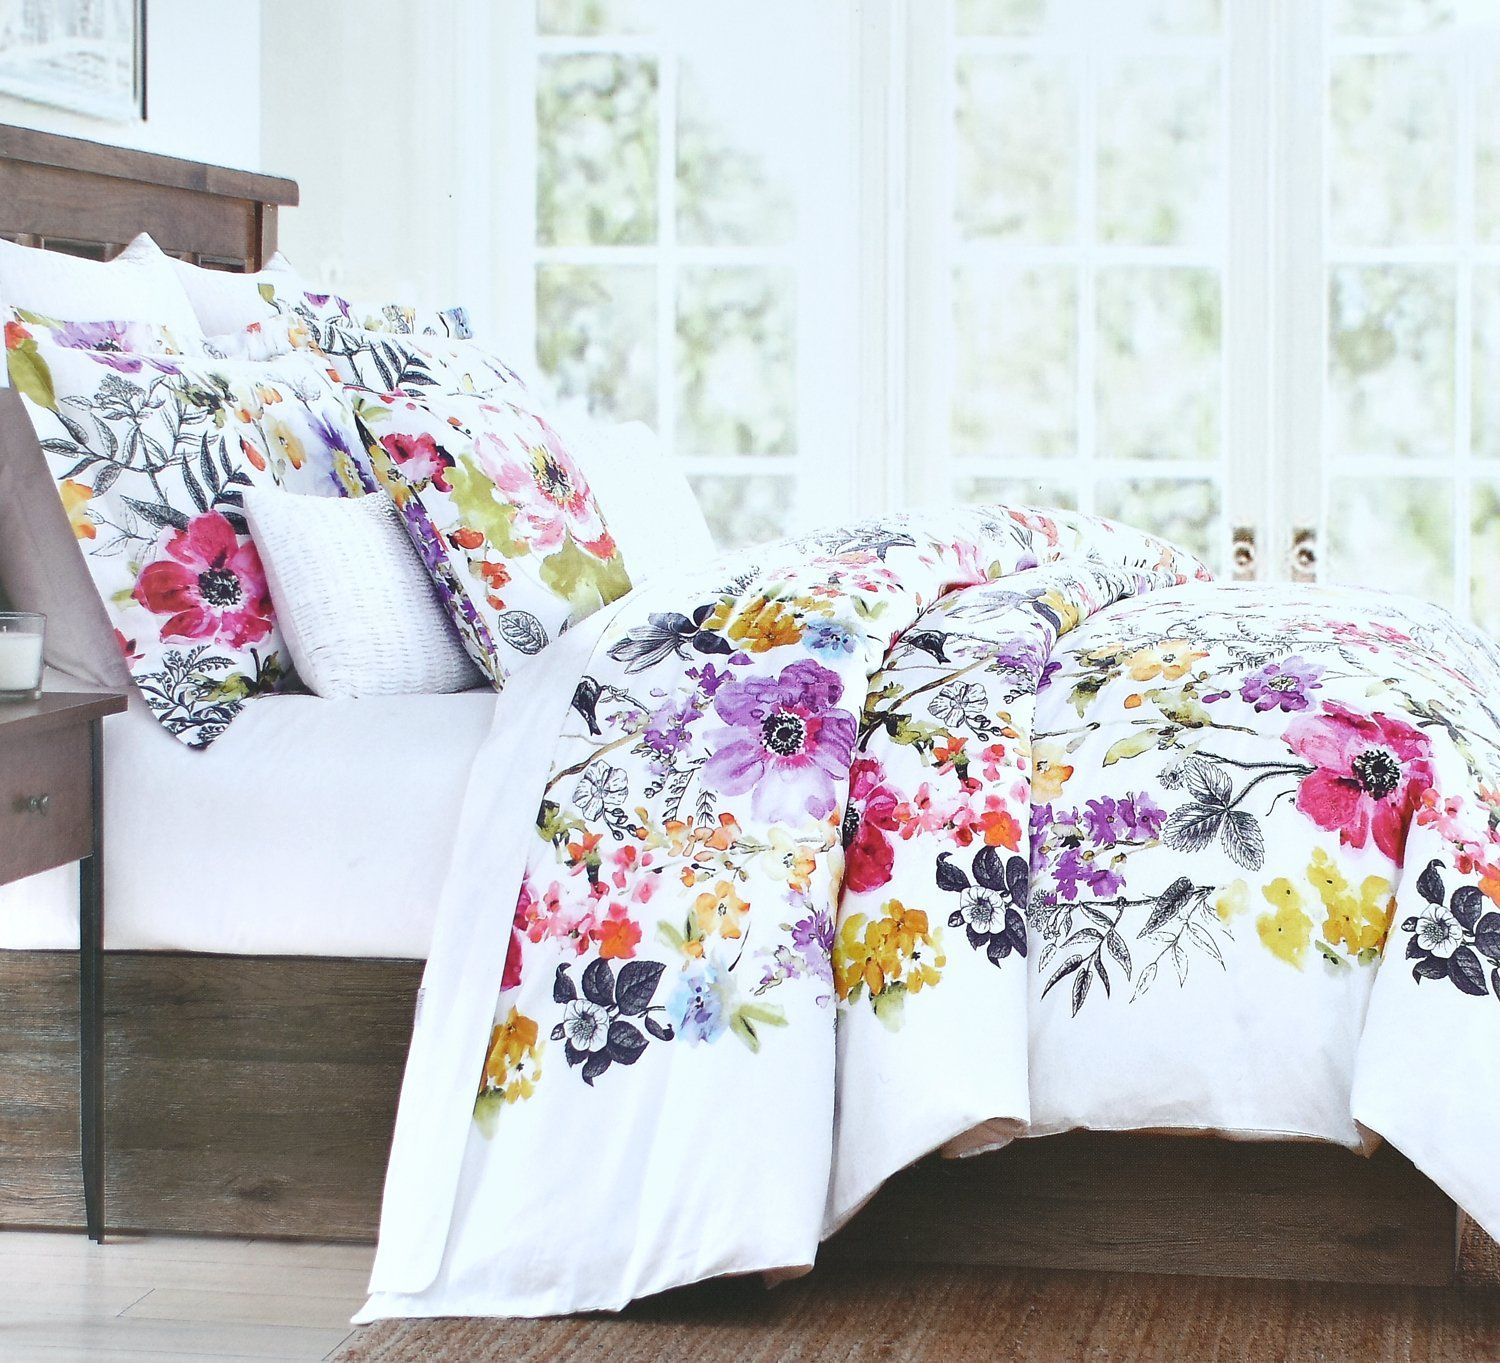 Vintage Botanical Wild Flower Print Duvet Quilt Cover By Envogue